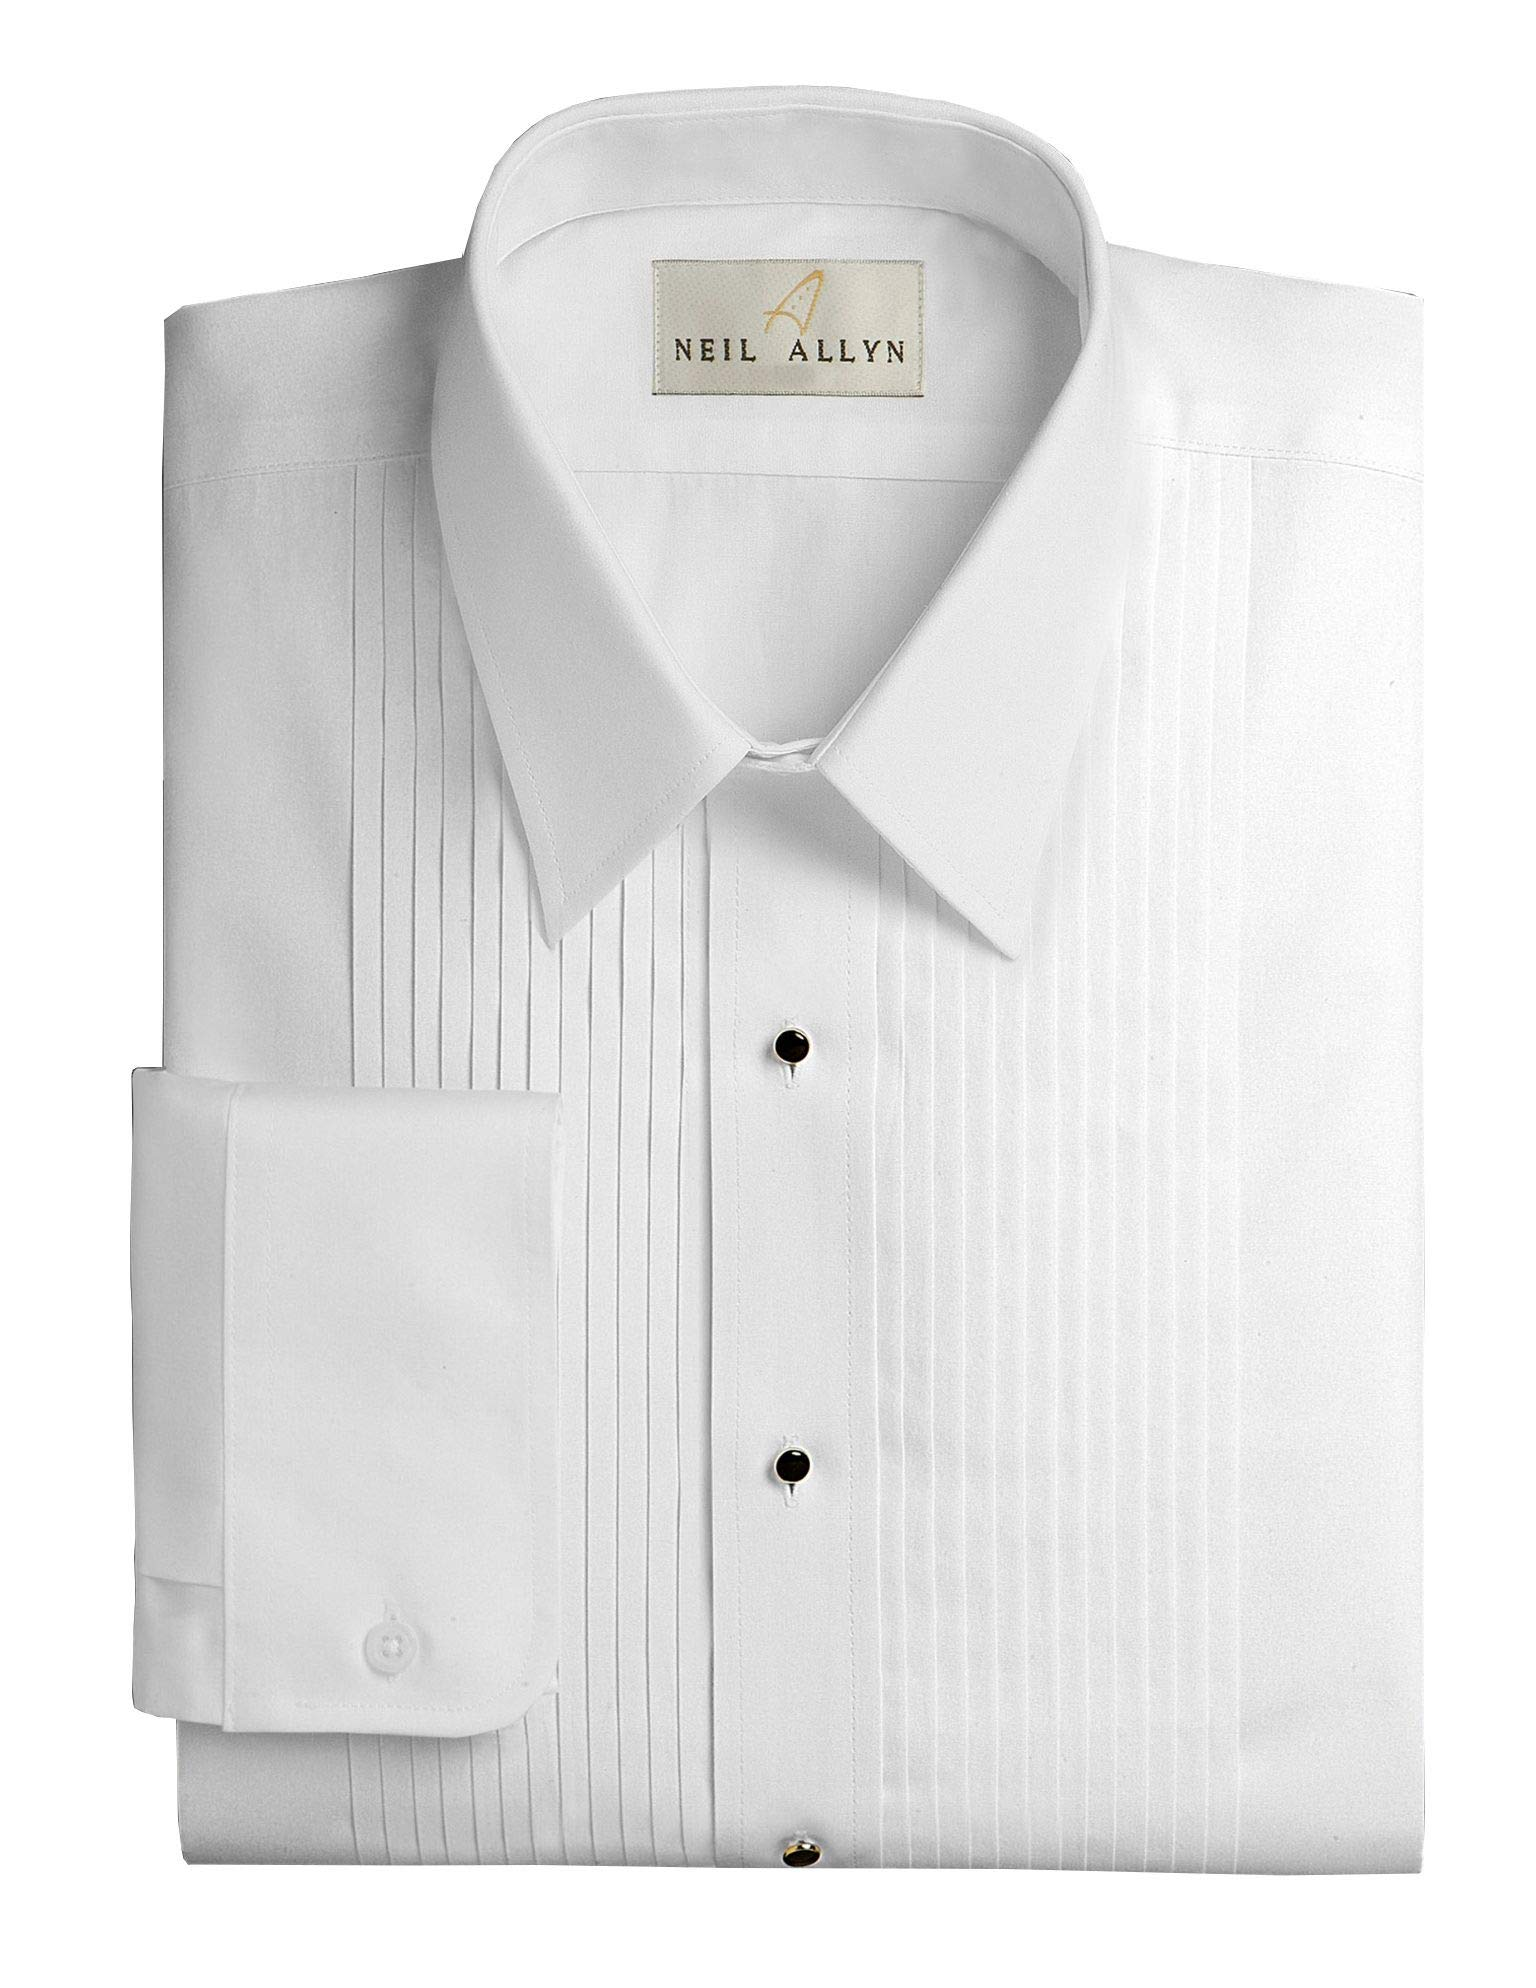 Neil Allyn Men's Slim FIT Lay-Down Collar 1/4'' Pleats Tuxedo Shirt-L-32-33 White by Neil Allyn